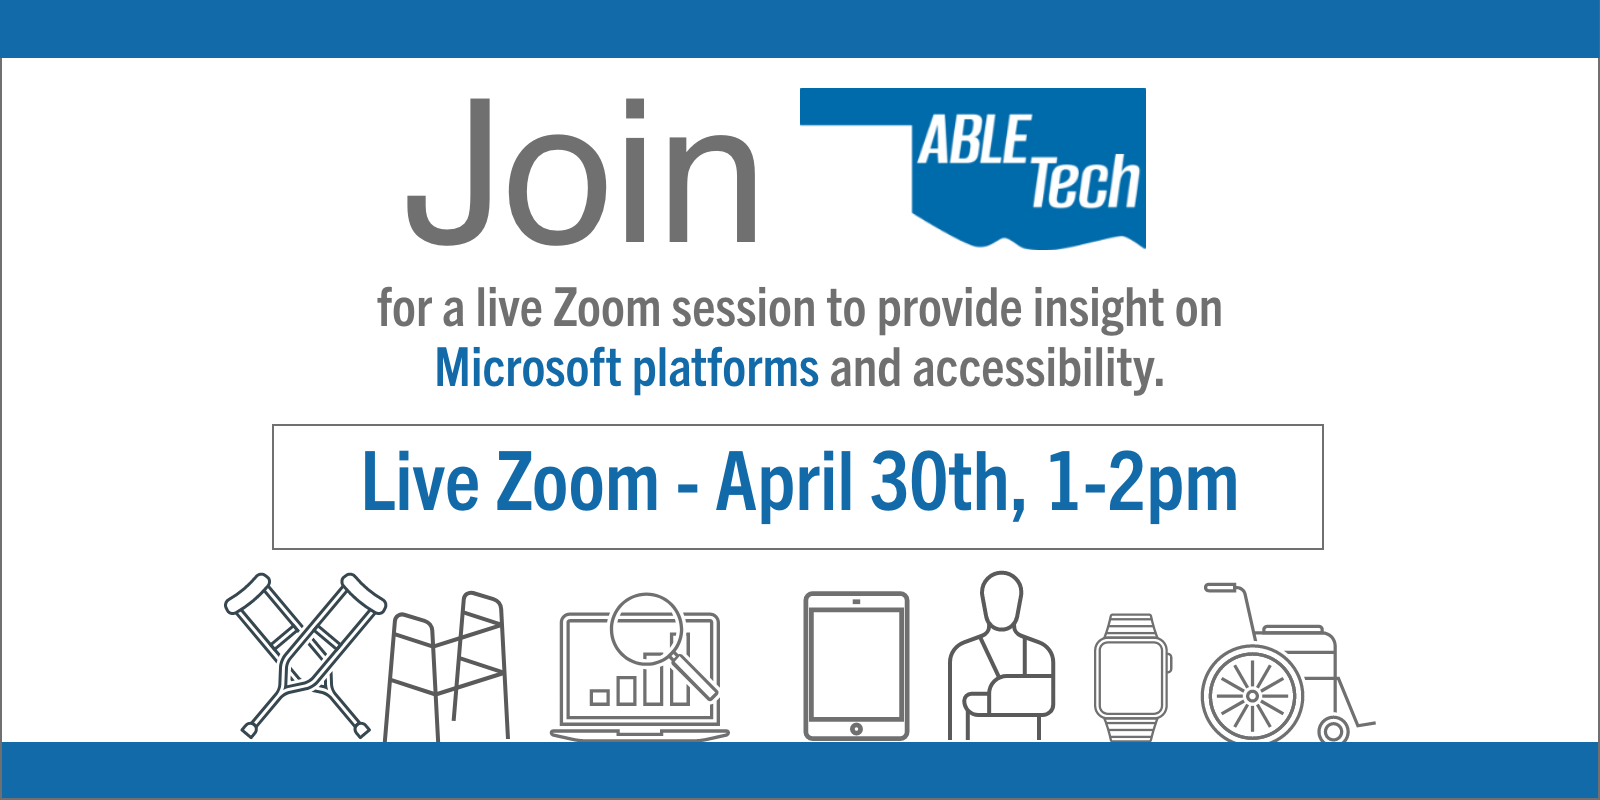 Live Zoom April 30th, 1-2pm